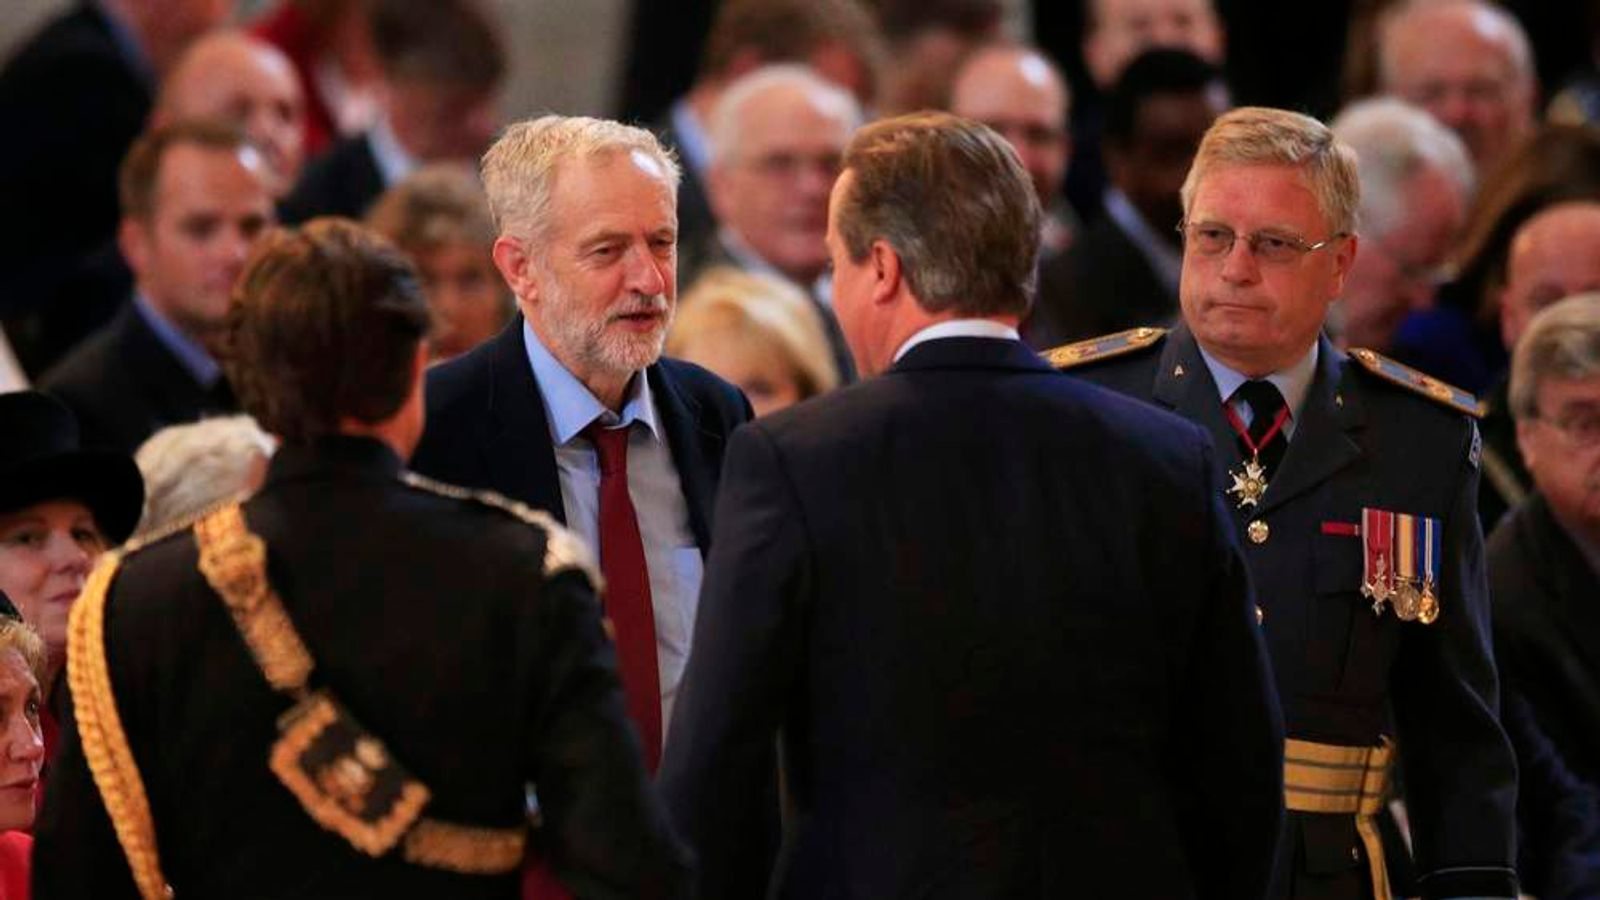 Jeremy Corbyn and David Cameron at Battle of Britain service